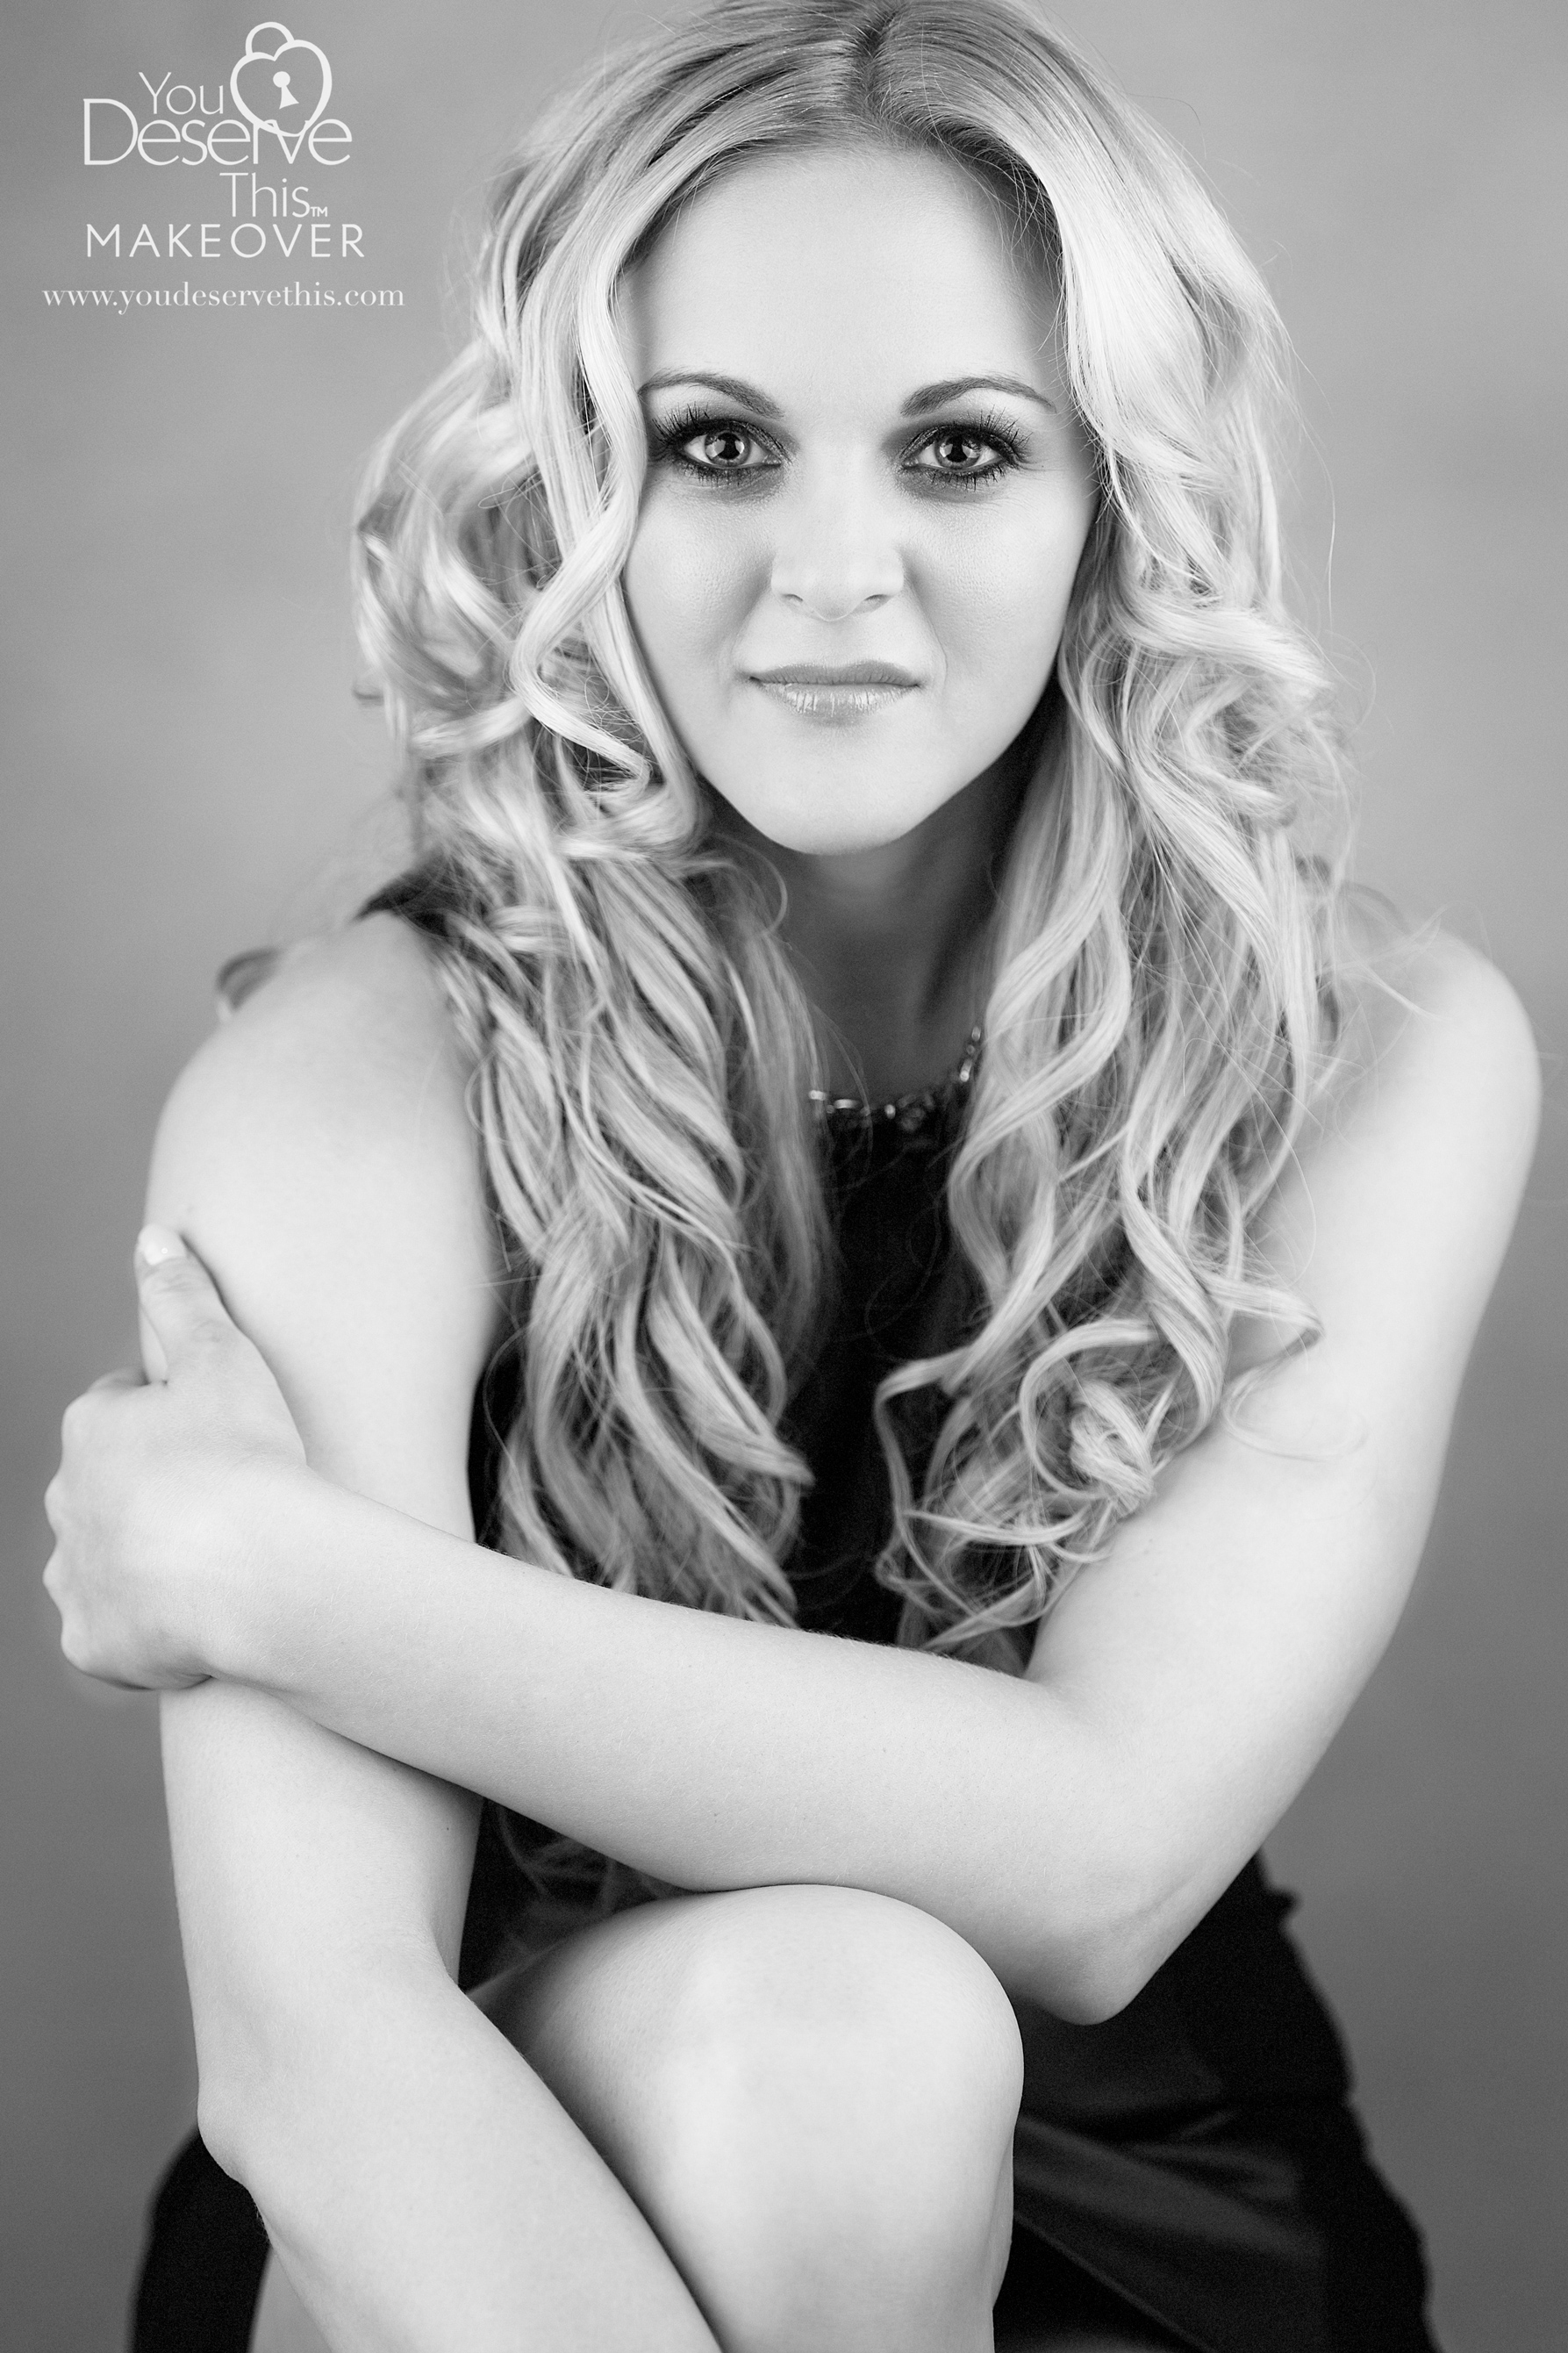 Portraits for women , strong, confident, empowering and uplifting.  www.youdeservethis.com